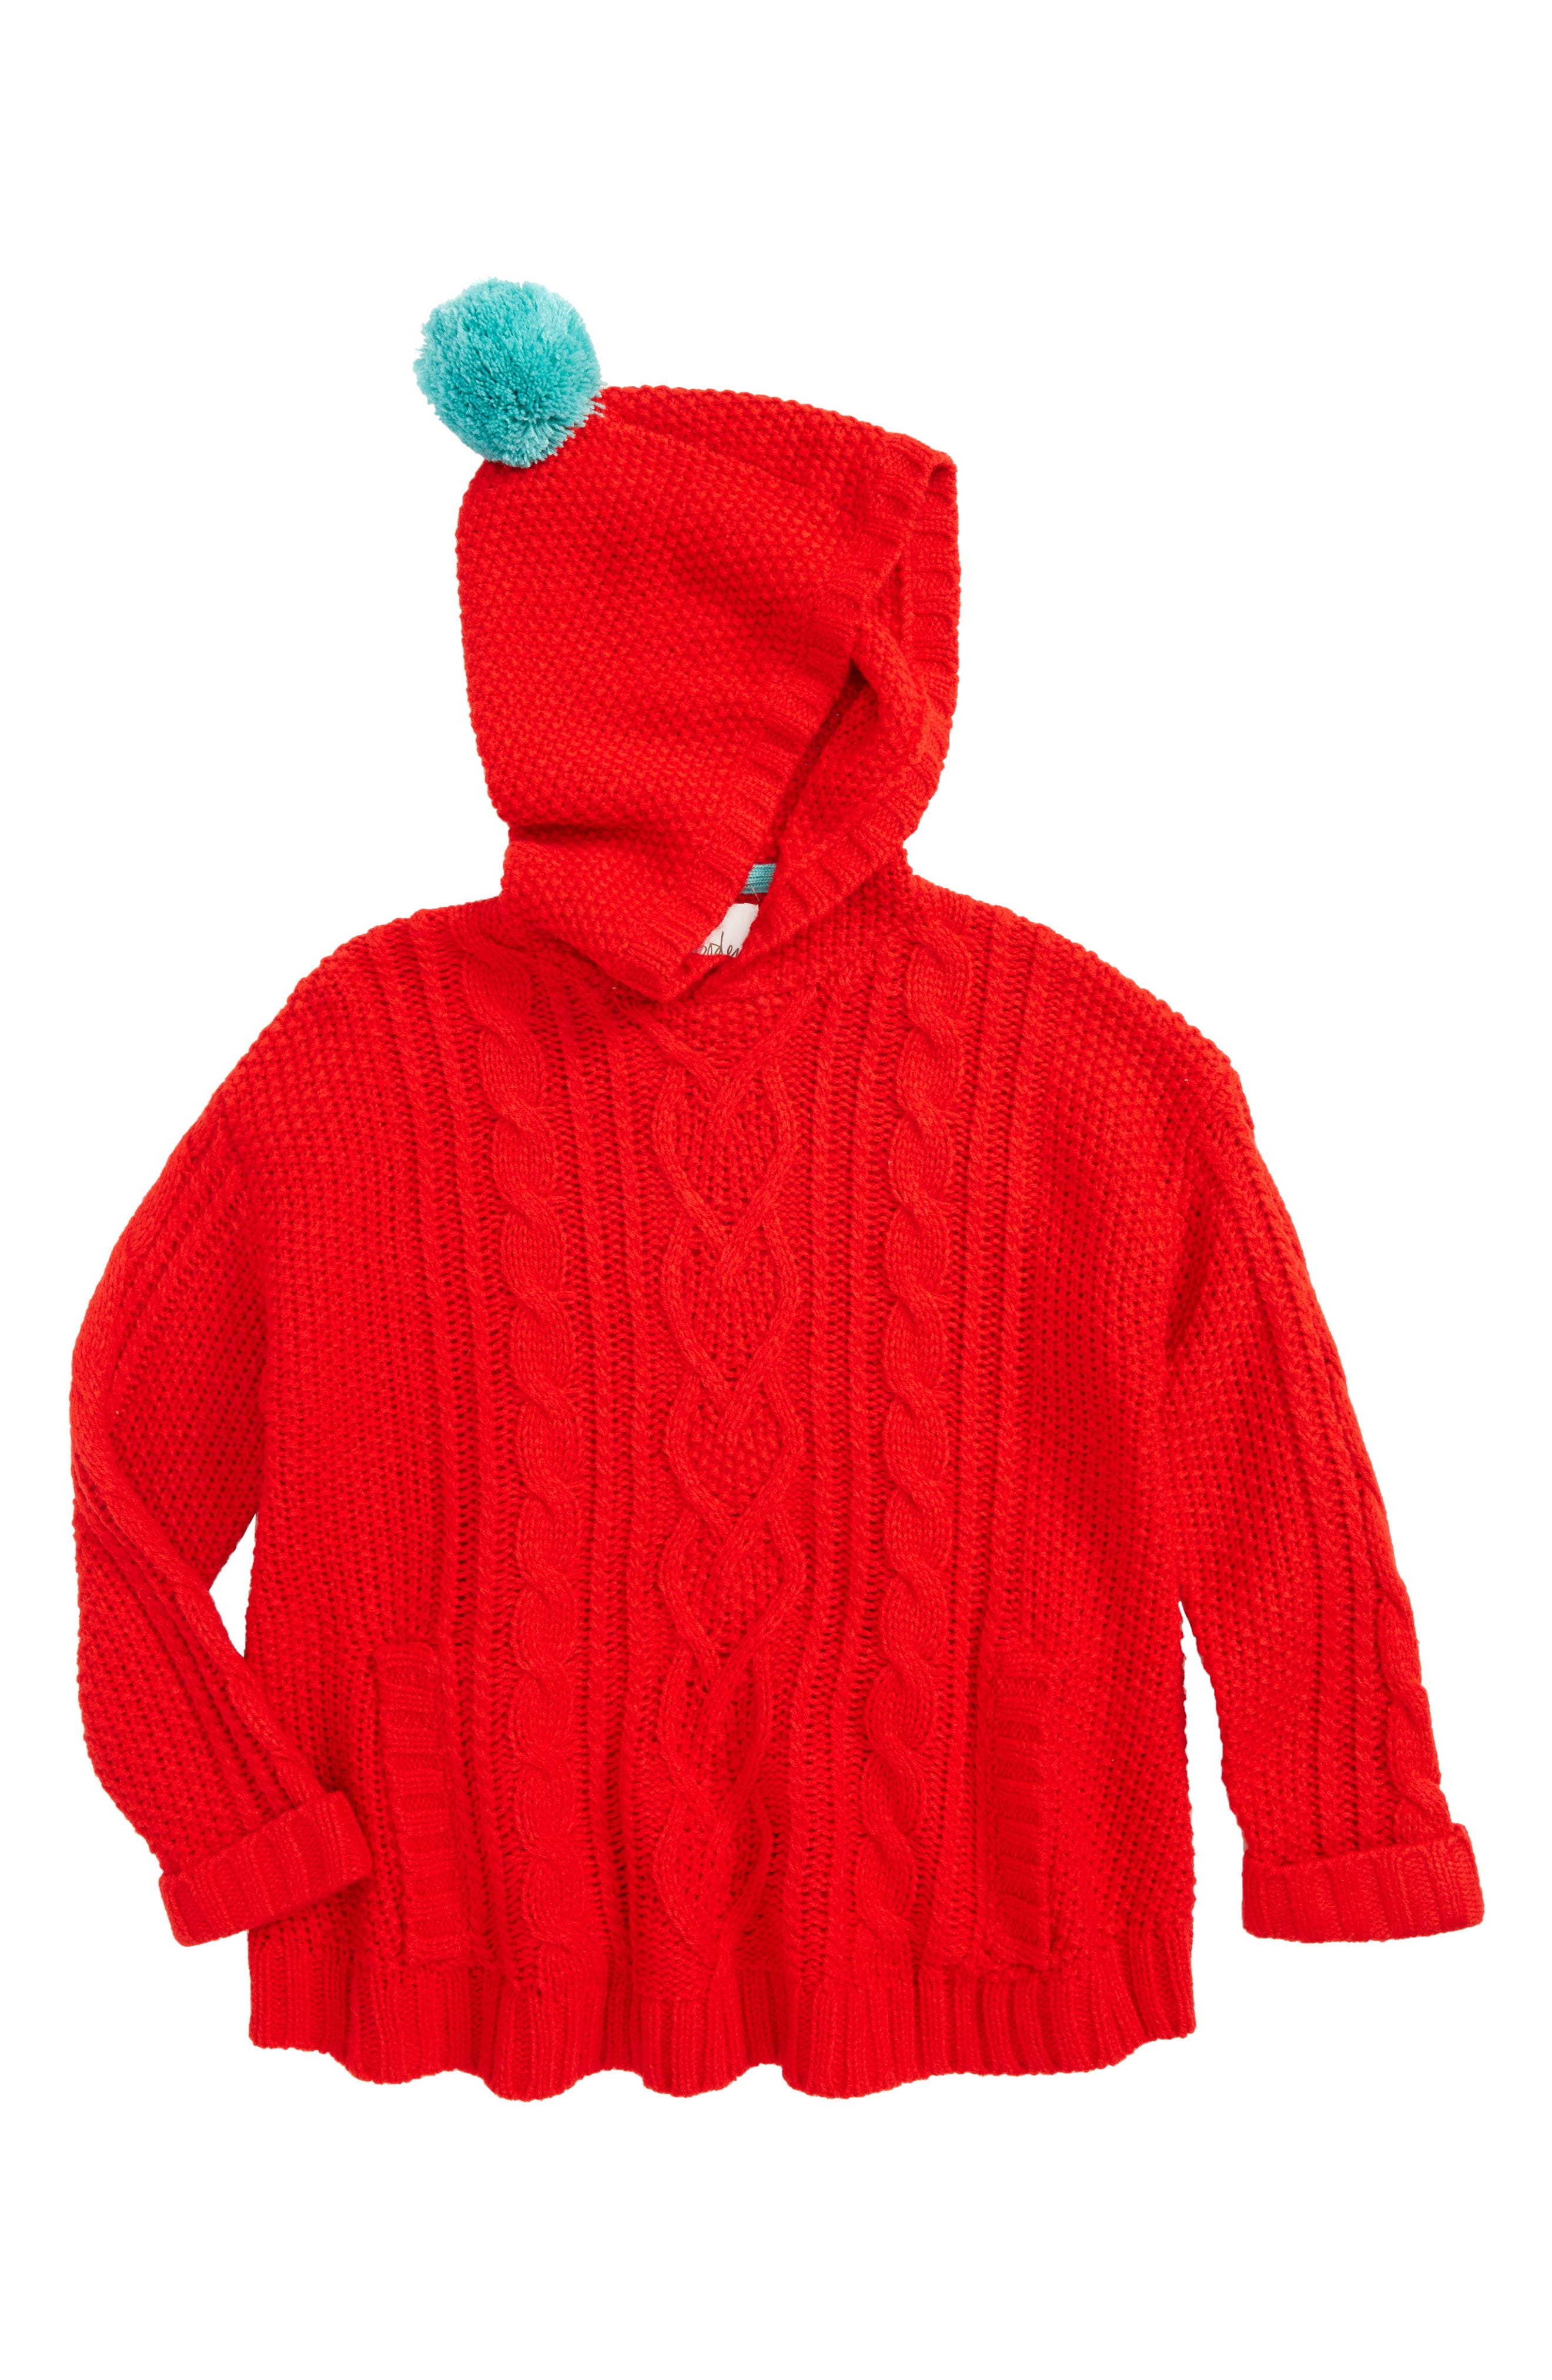 Cable Knit Hooded Sweater,                             Main thumbnail 1, color,                             614